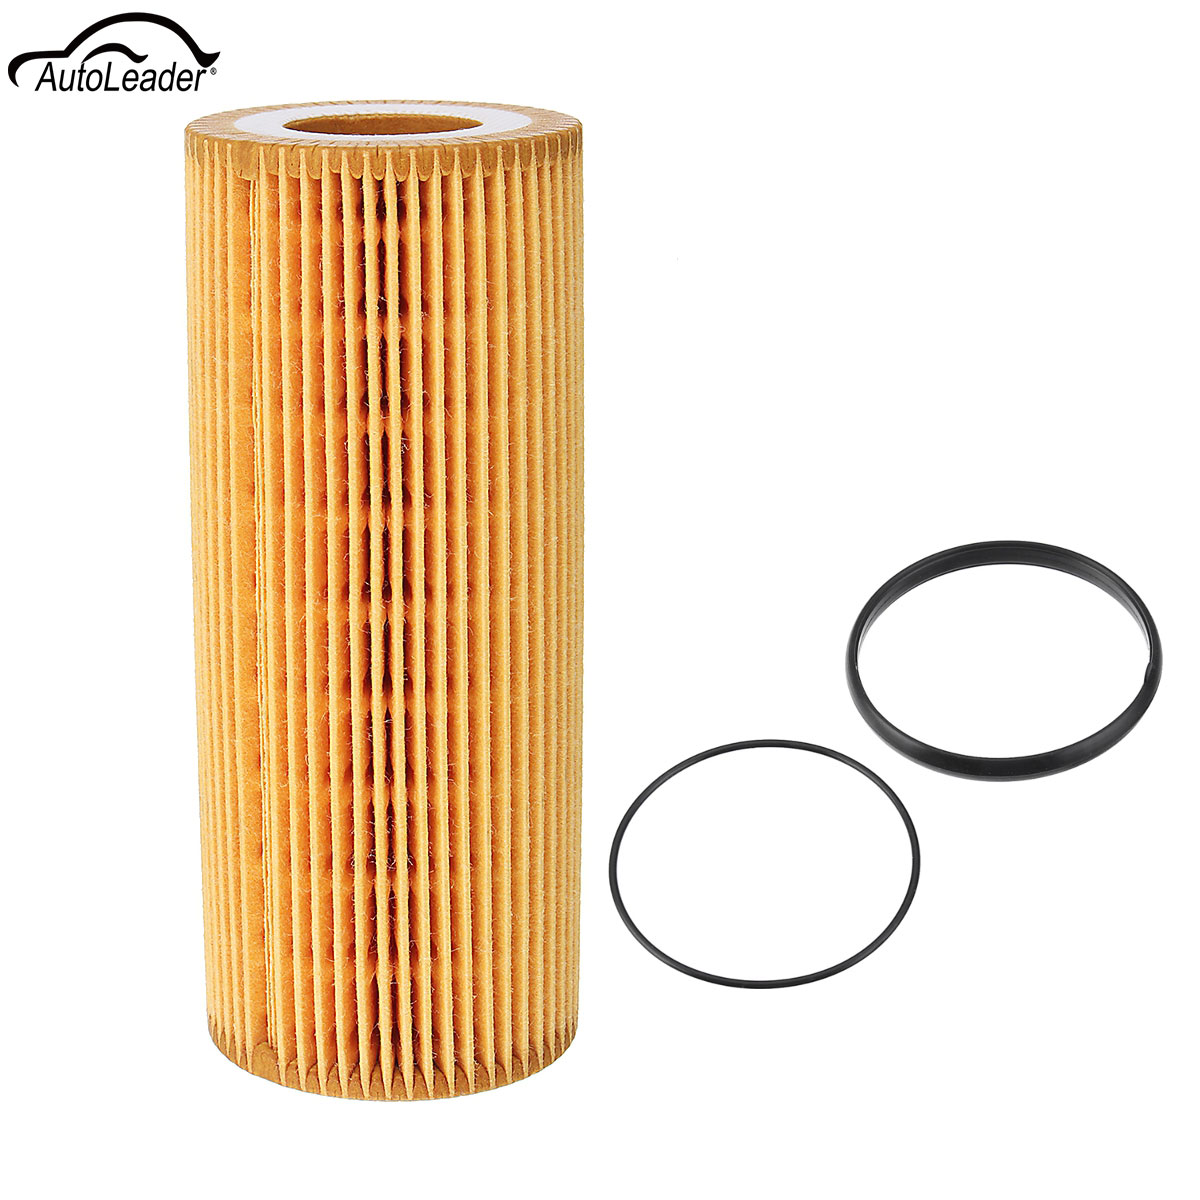 06E115466 Engine Oil Filter with Gasket Kit For Porsche Cayenne for Panamera for Audi A4 A5 A6 A7 Q5 Q7 for Volkswagen Touareg